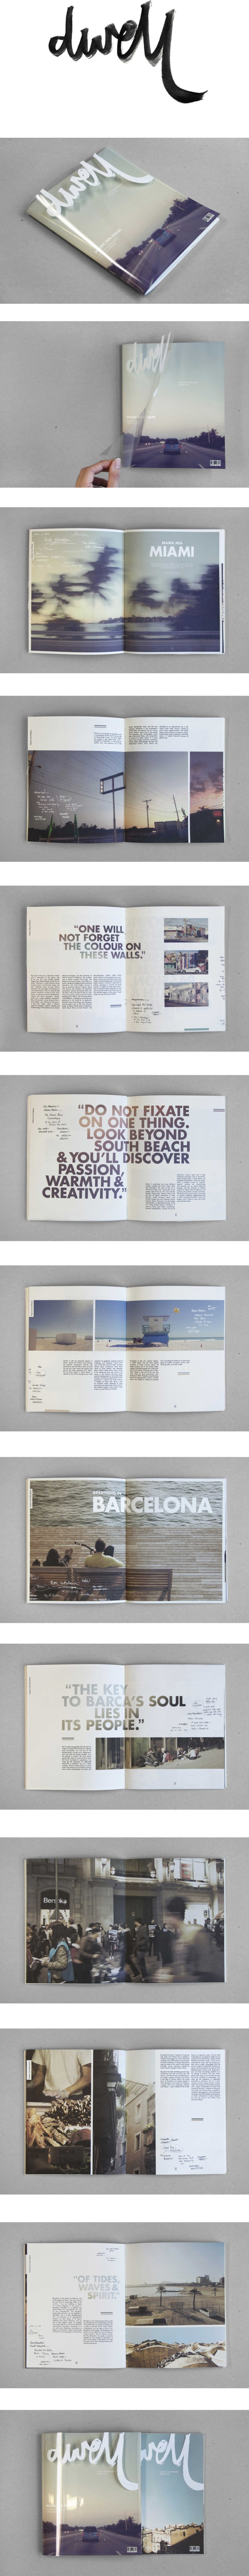 Dwell - Coastal Cities Revisited. Magazine visual identity and layout pitch done as part of BA (Hons) coursework. Photos of Barcelona used with permission from Daniel Ong and Leon Cher. made by Yi Xiang Lim